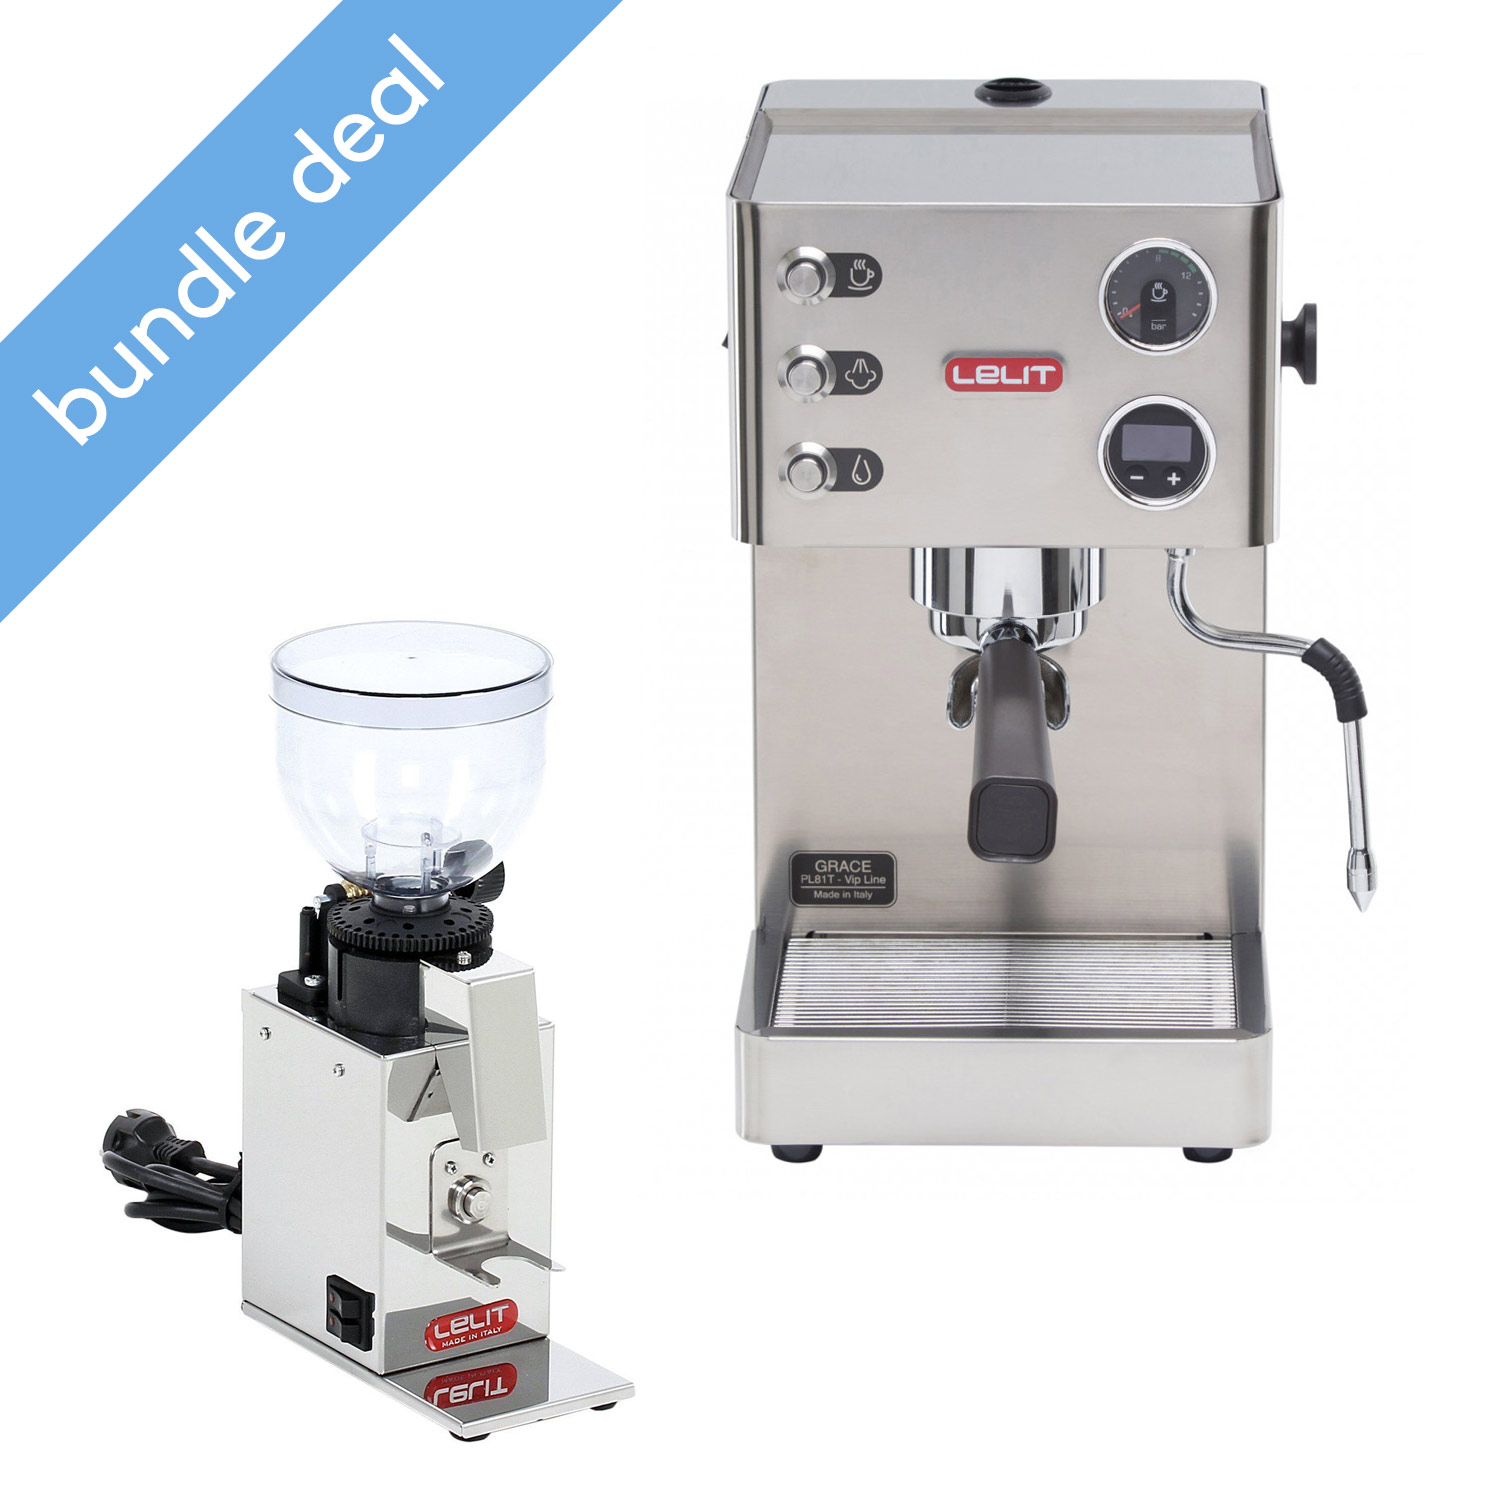 Lelit Grace Semi Automatic Espresso Machine and Fred Grinder Bundle - PL81T + PL043MMI